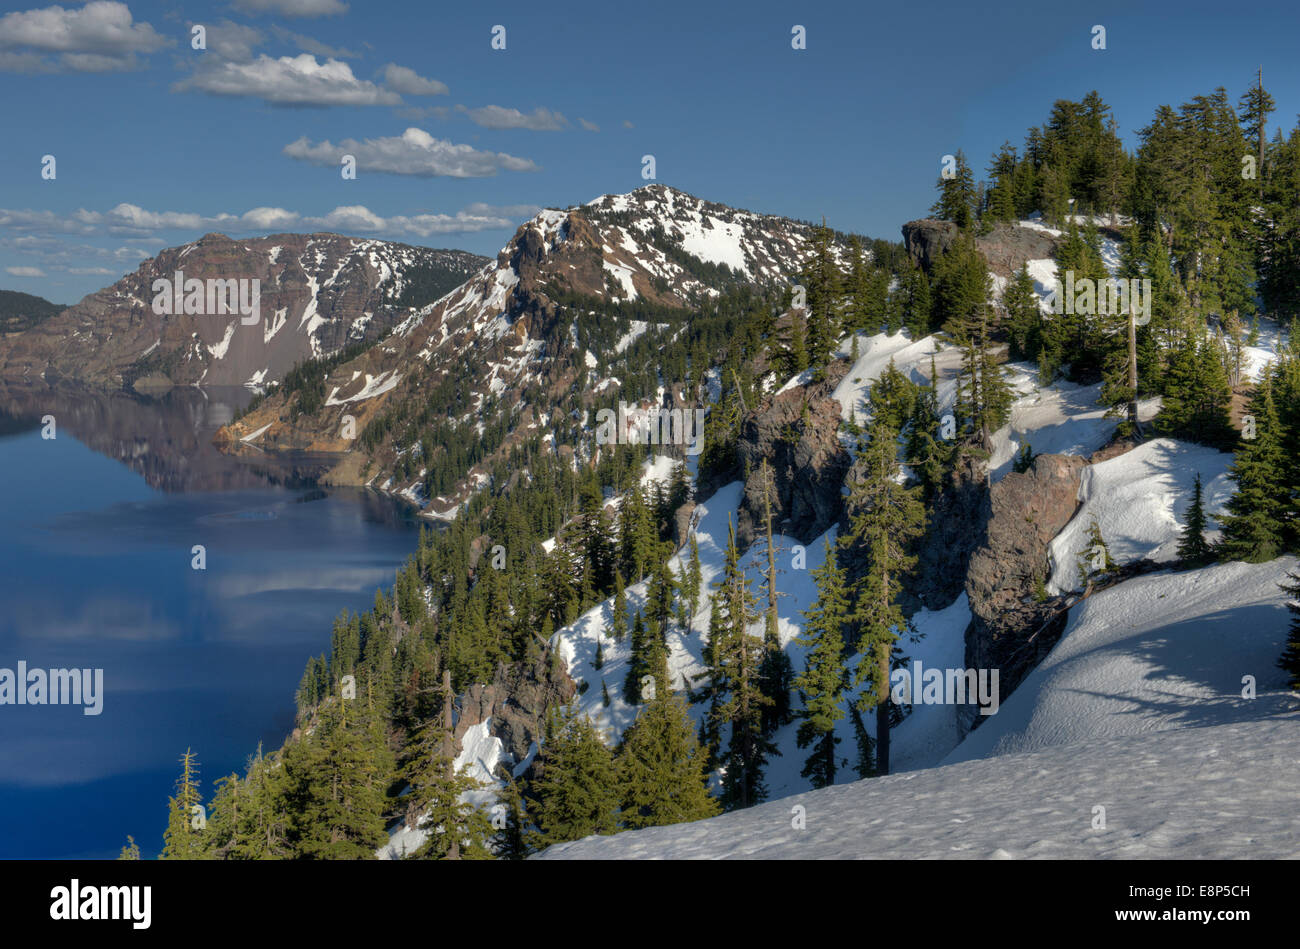 The south rim of Oregon's Crater Lake, as seen from Discovery Point, late spring - Stock Image